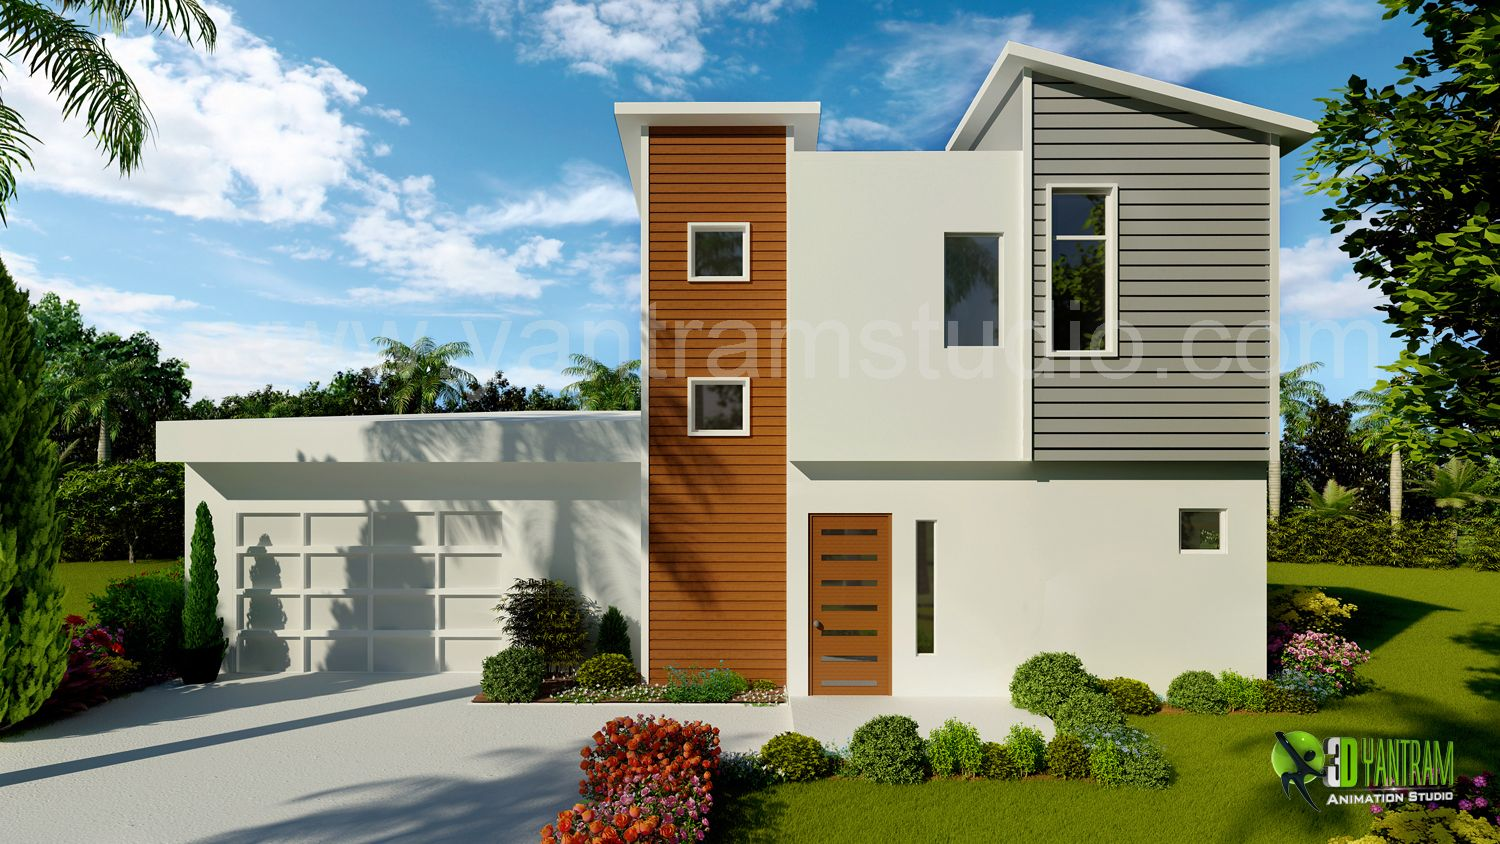 3d exterior home design rendering and animation by yantram studio exterior architectural - Painting exterior render model ...